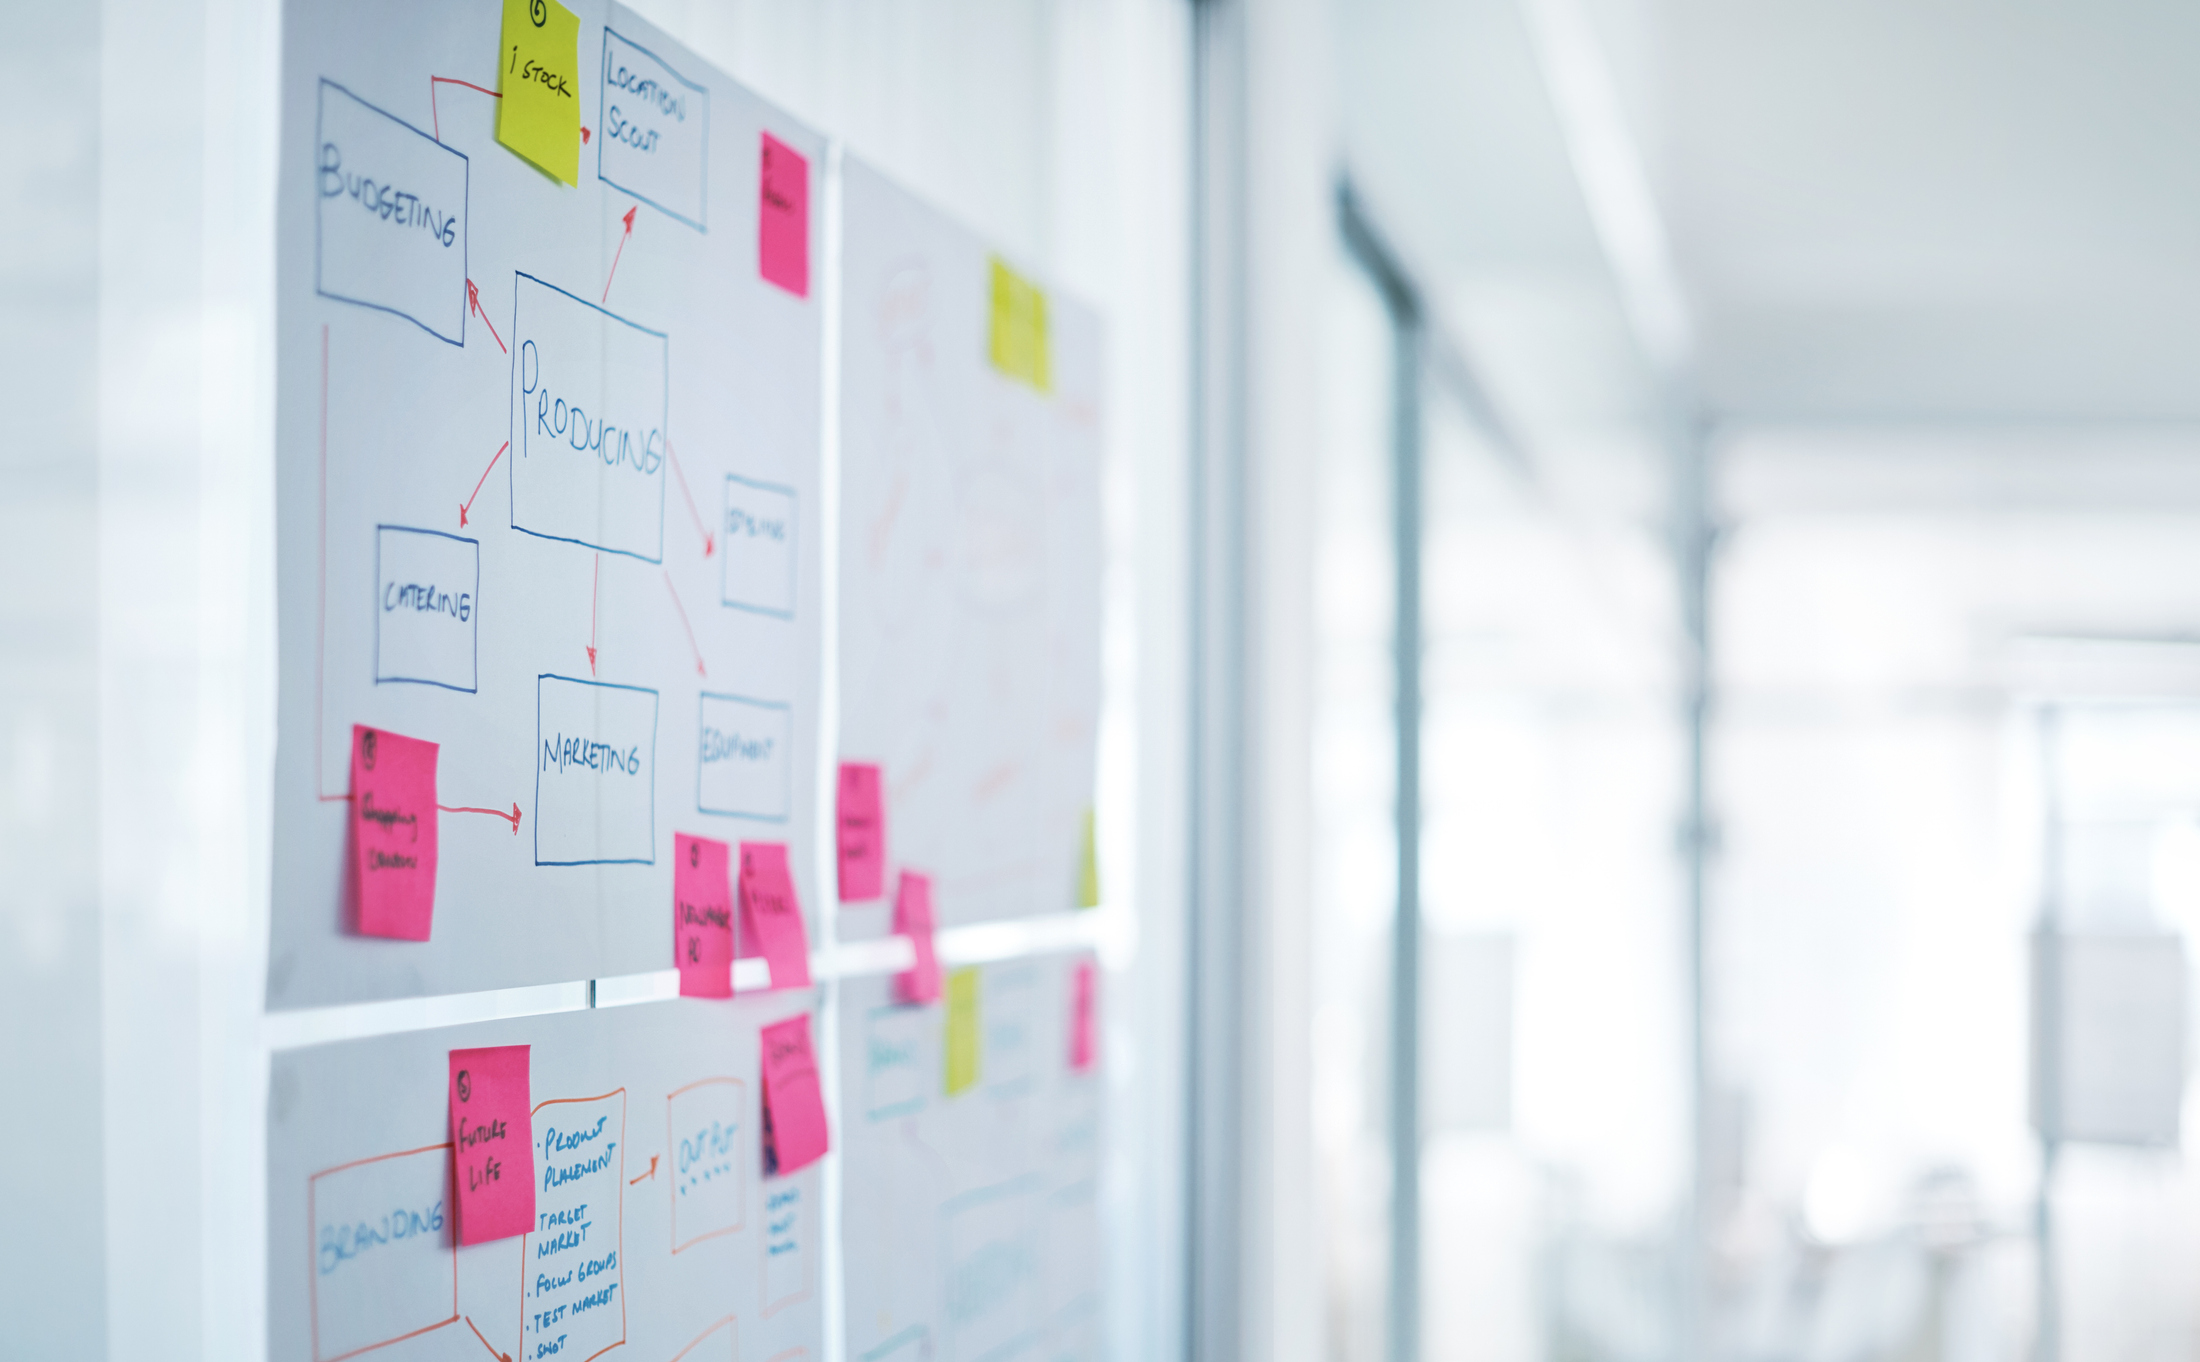 Shot of a bunch sticky notes and plans on a glass wall